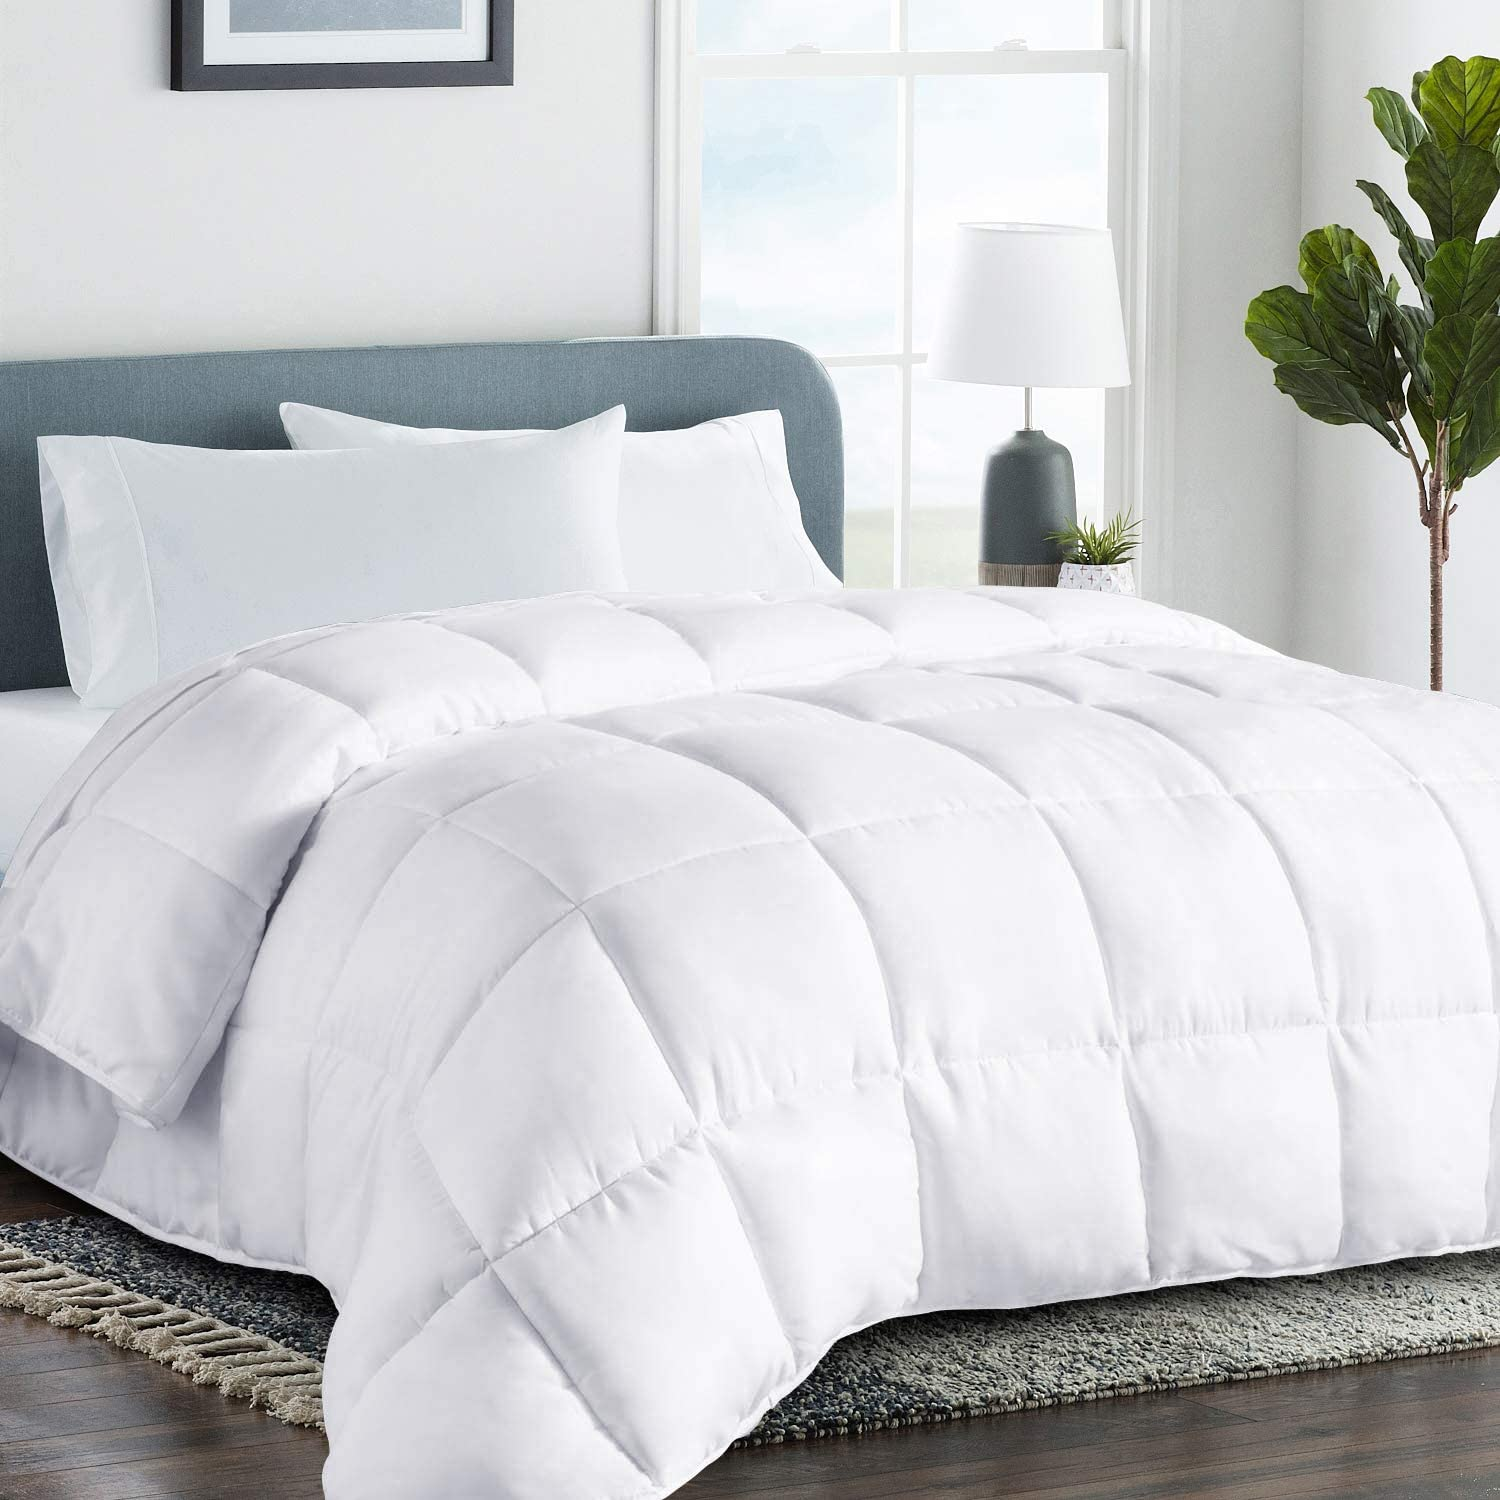 COHOME King 2100 Series Cooling Comforter Down Alternative Quilted Duvet Insert with Corner Tabs All-Season - Luxury Hotel Comforter - Reversible - Machine Washable - White : Home & Kitchen